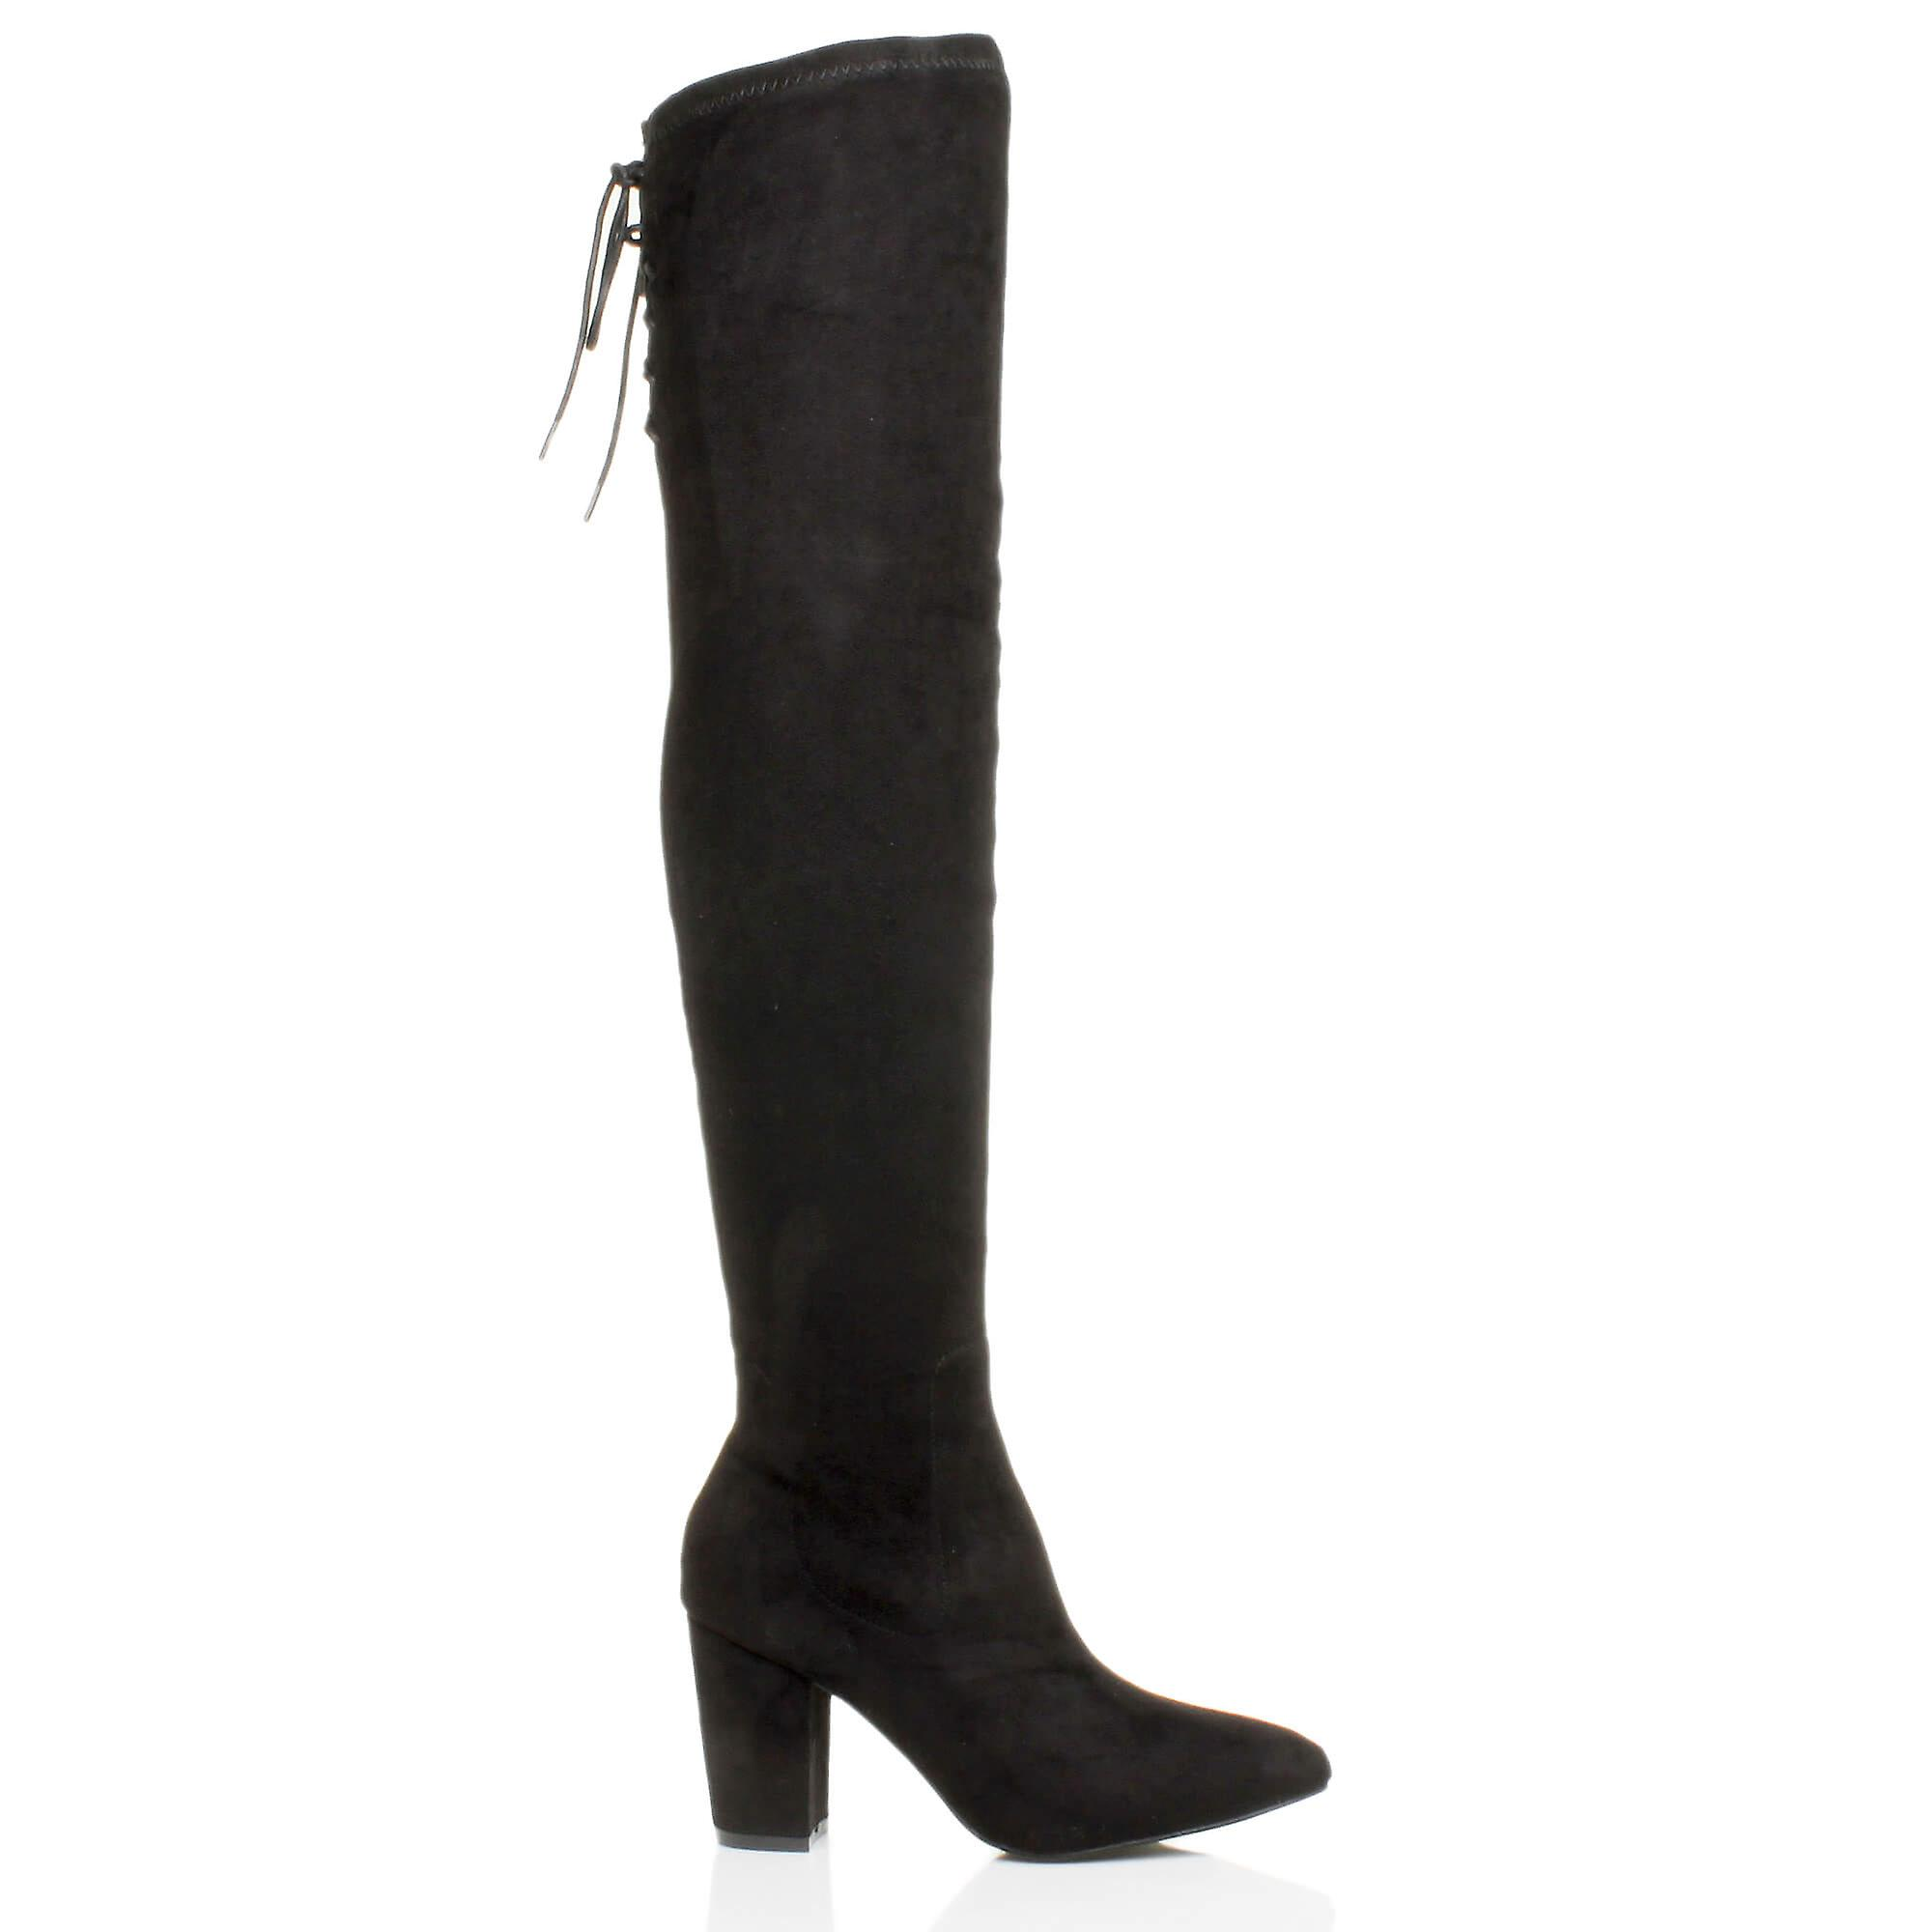 Ajvani womens high block heel stretch lace up riding over the knee boots